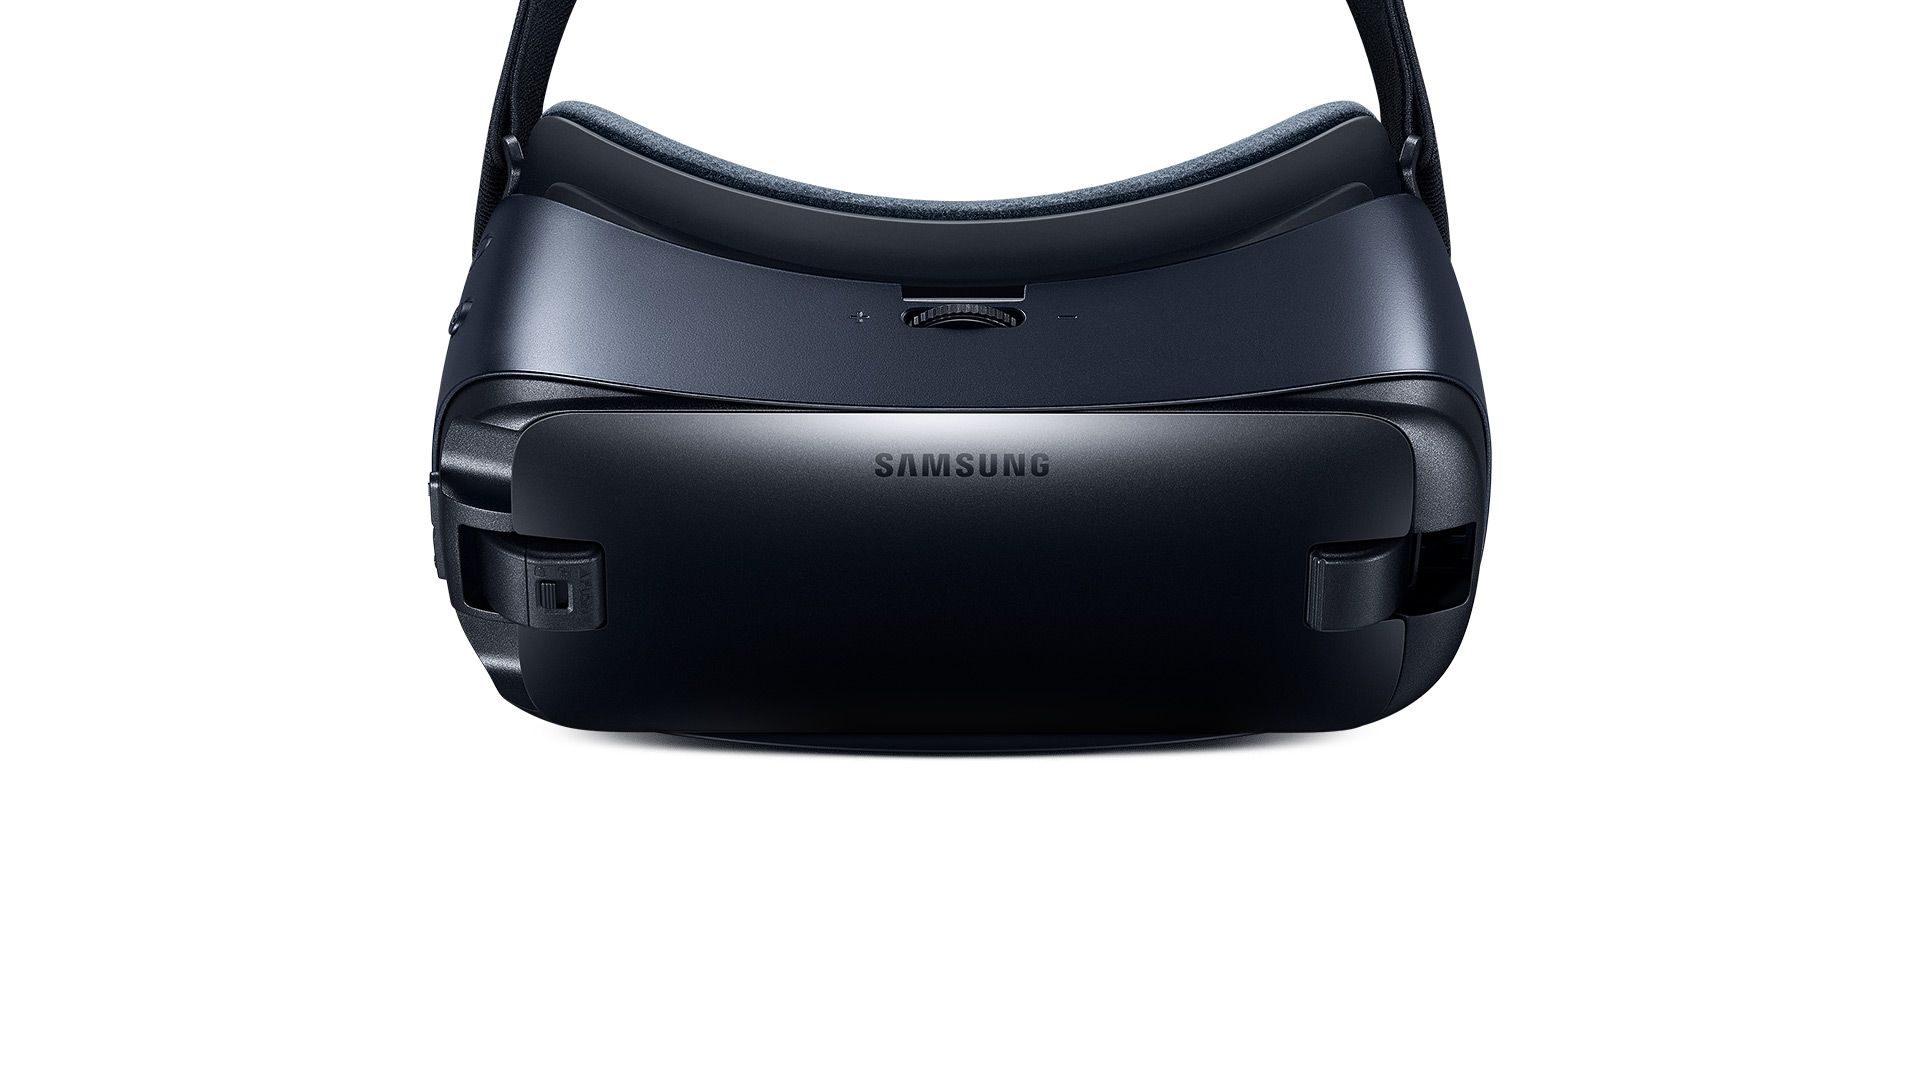 Samsung Gear Vr Brille Preis : Samsung gear vr 360° cams & virtual reality equipment